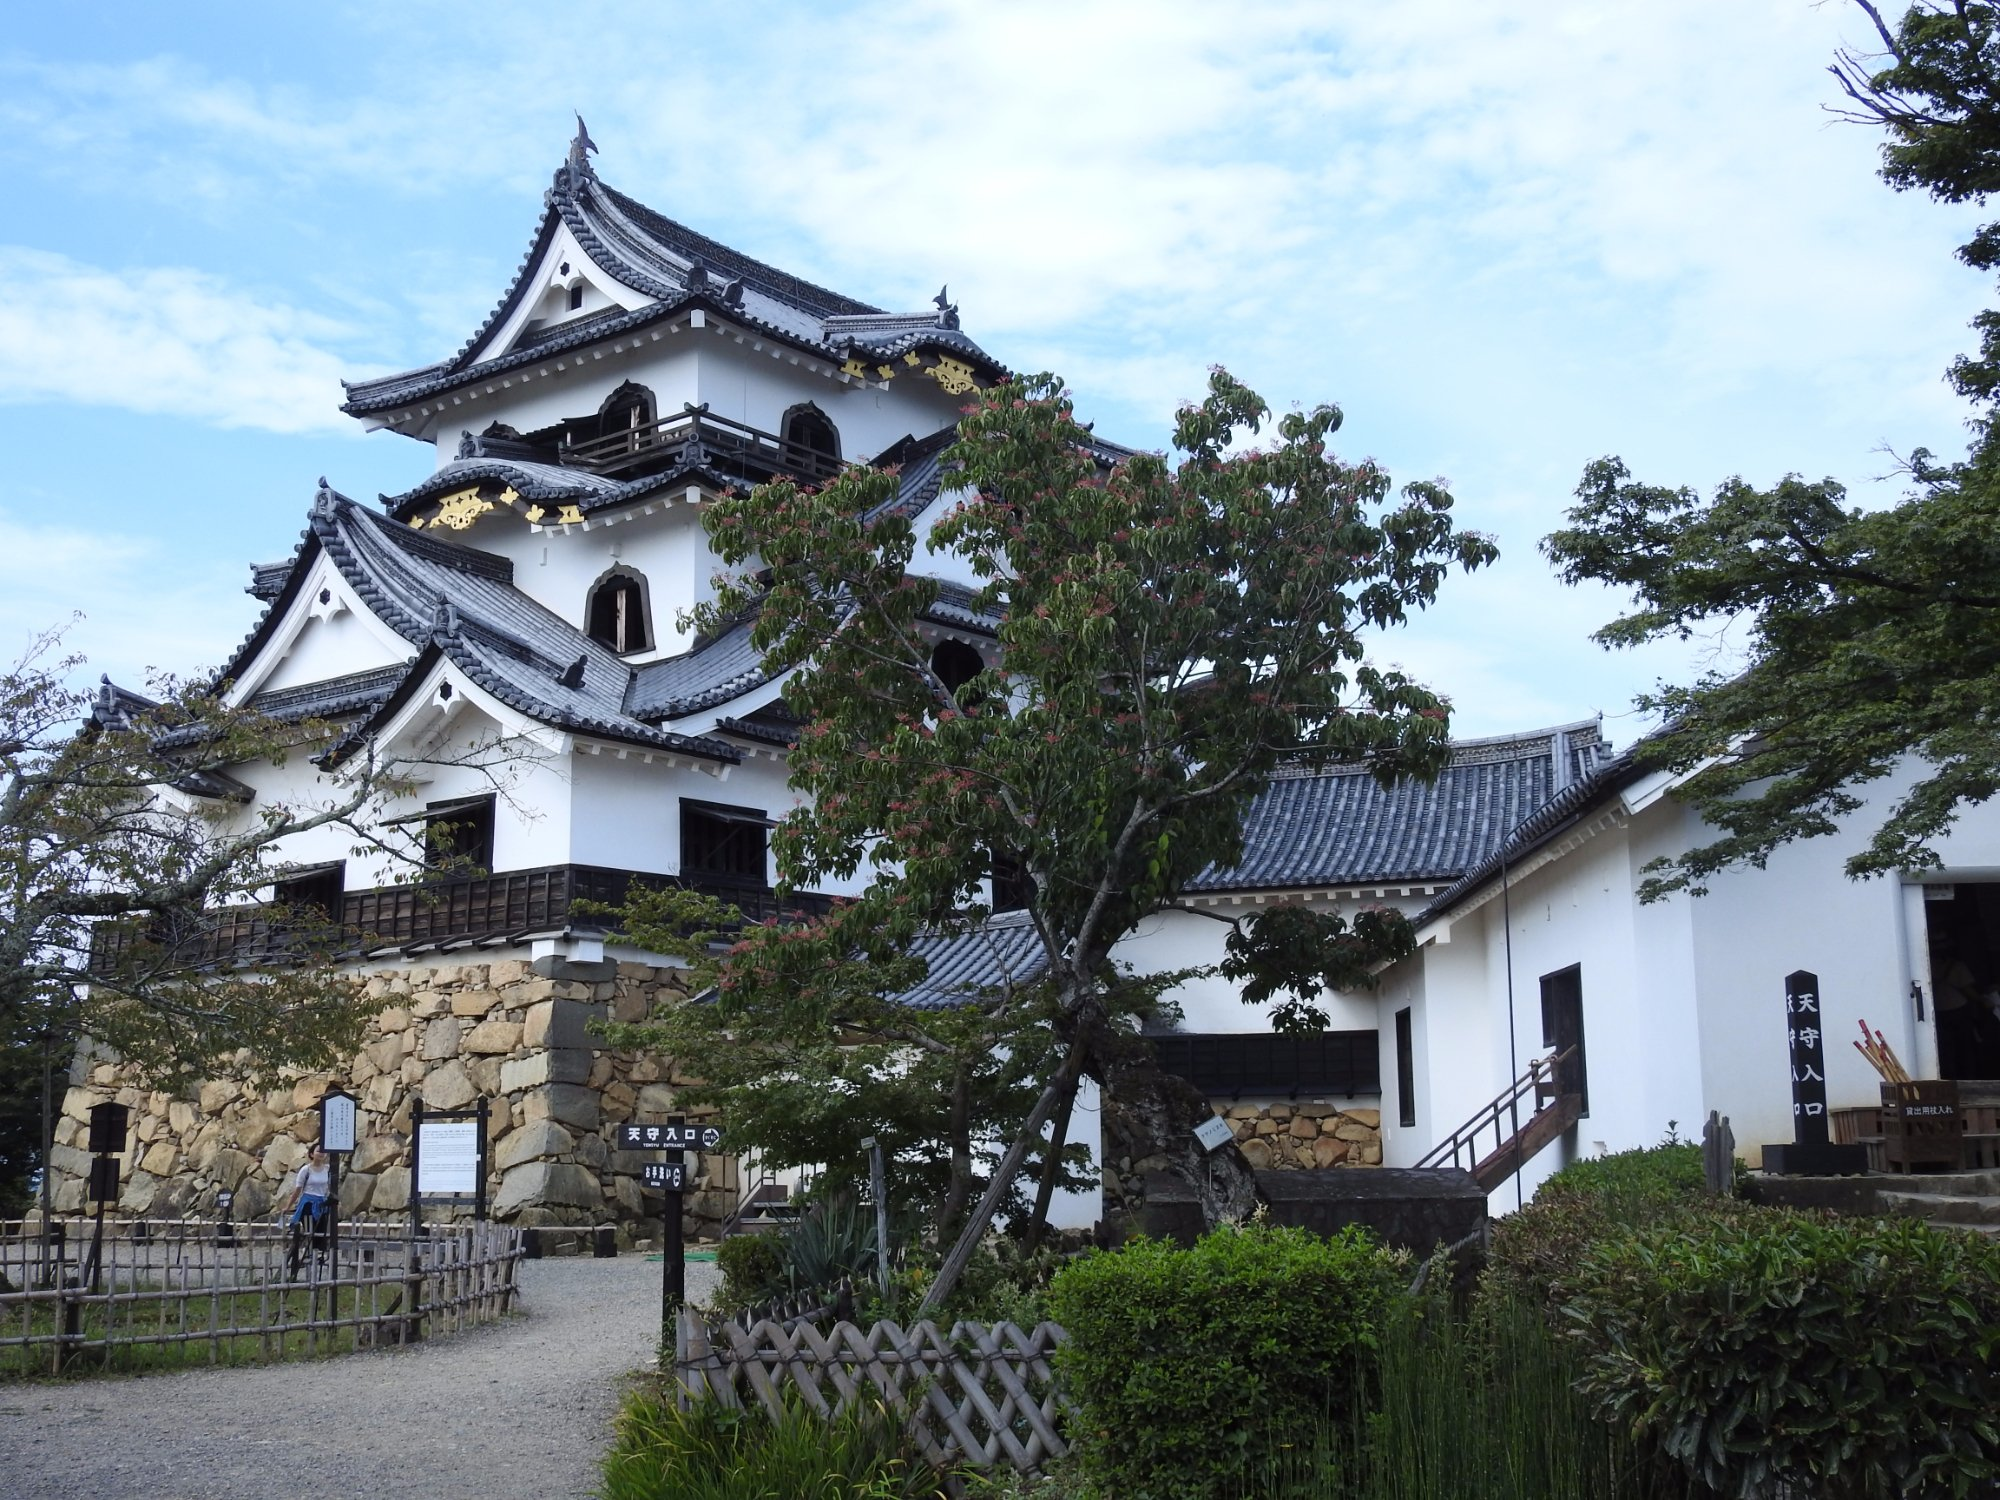 Hikone and The Castle of Lake Biwa